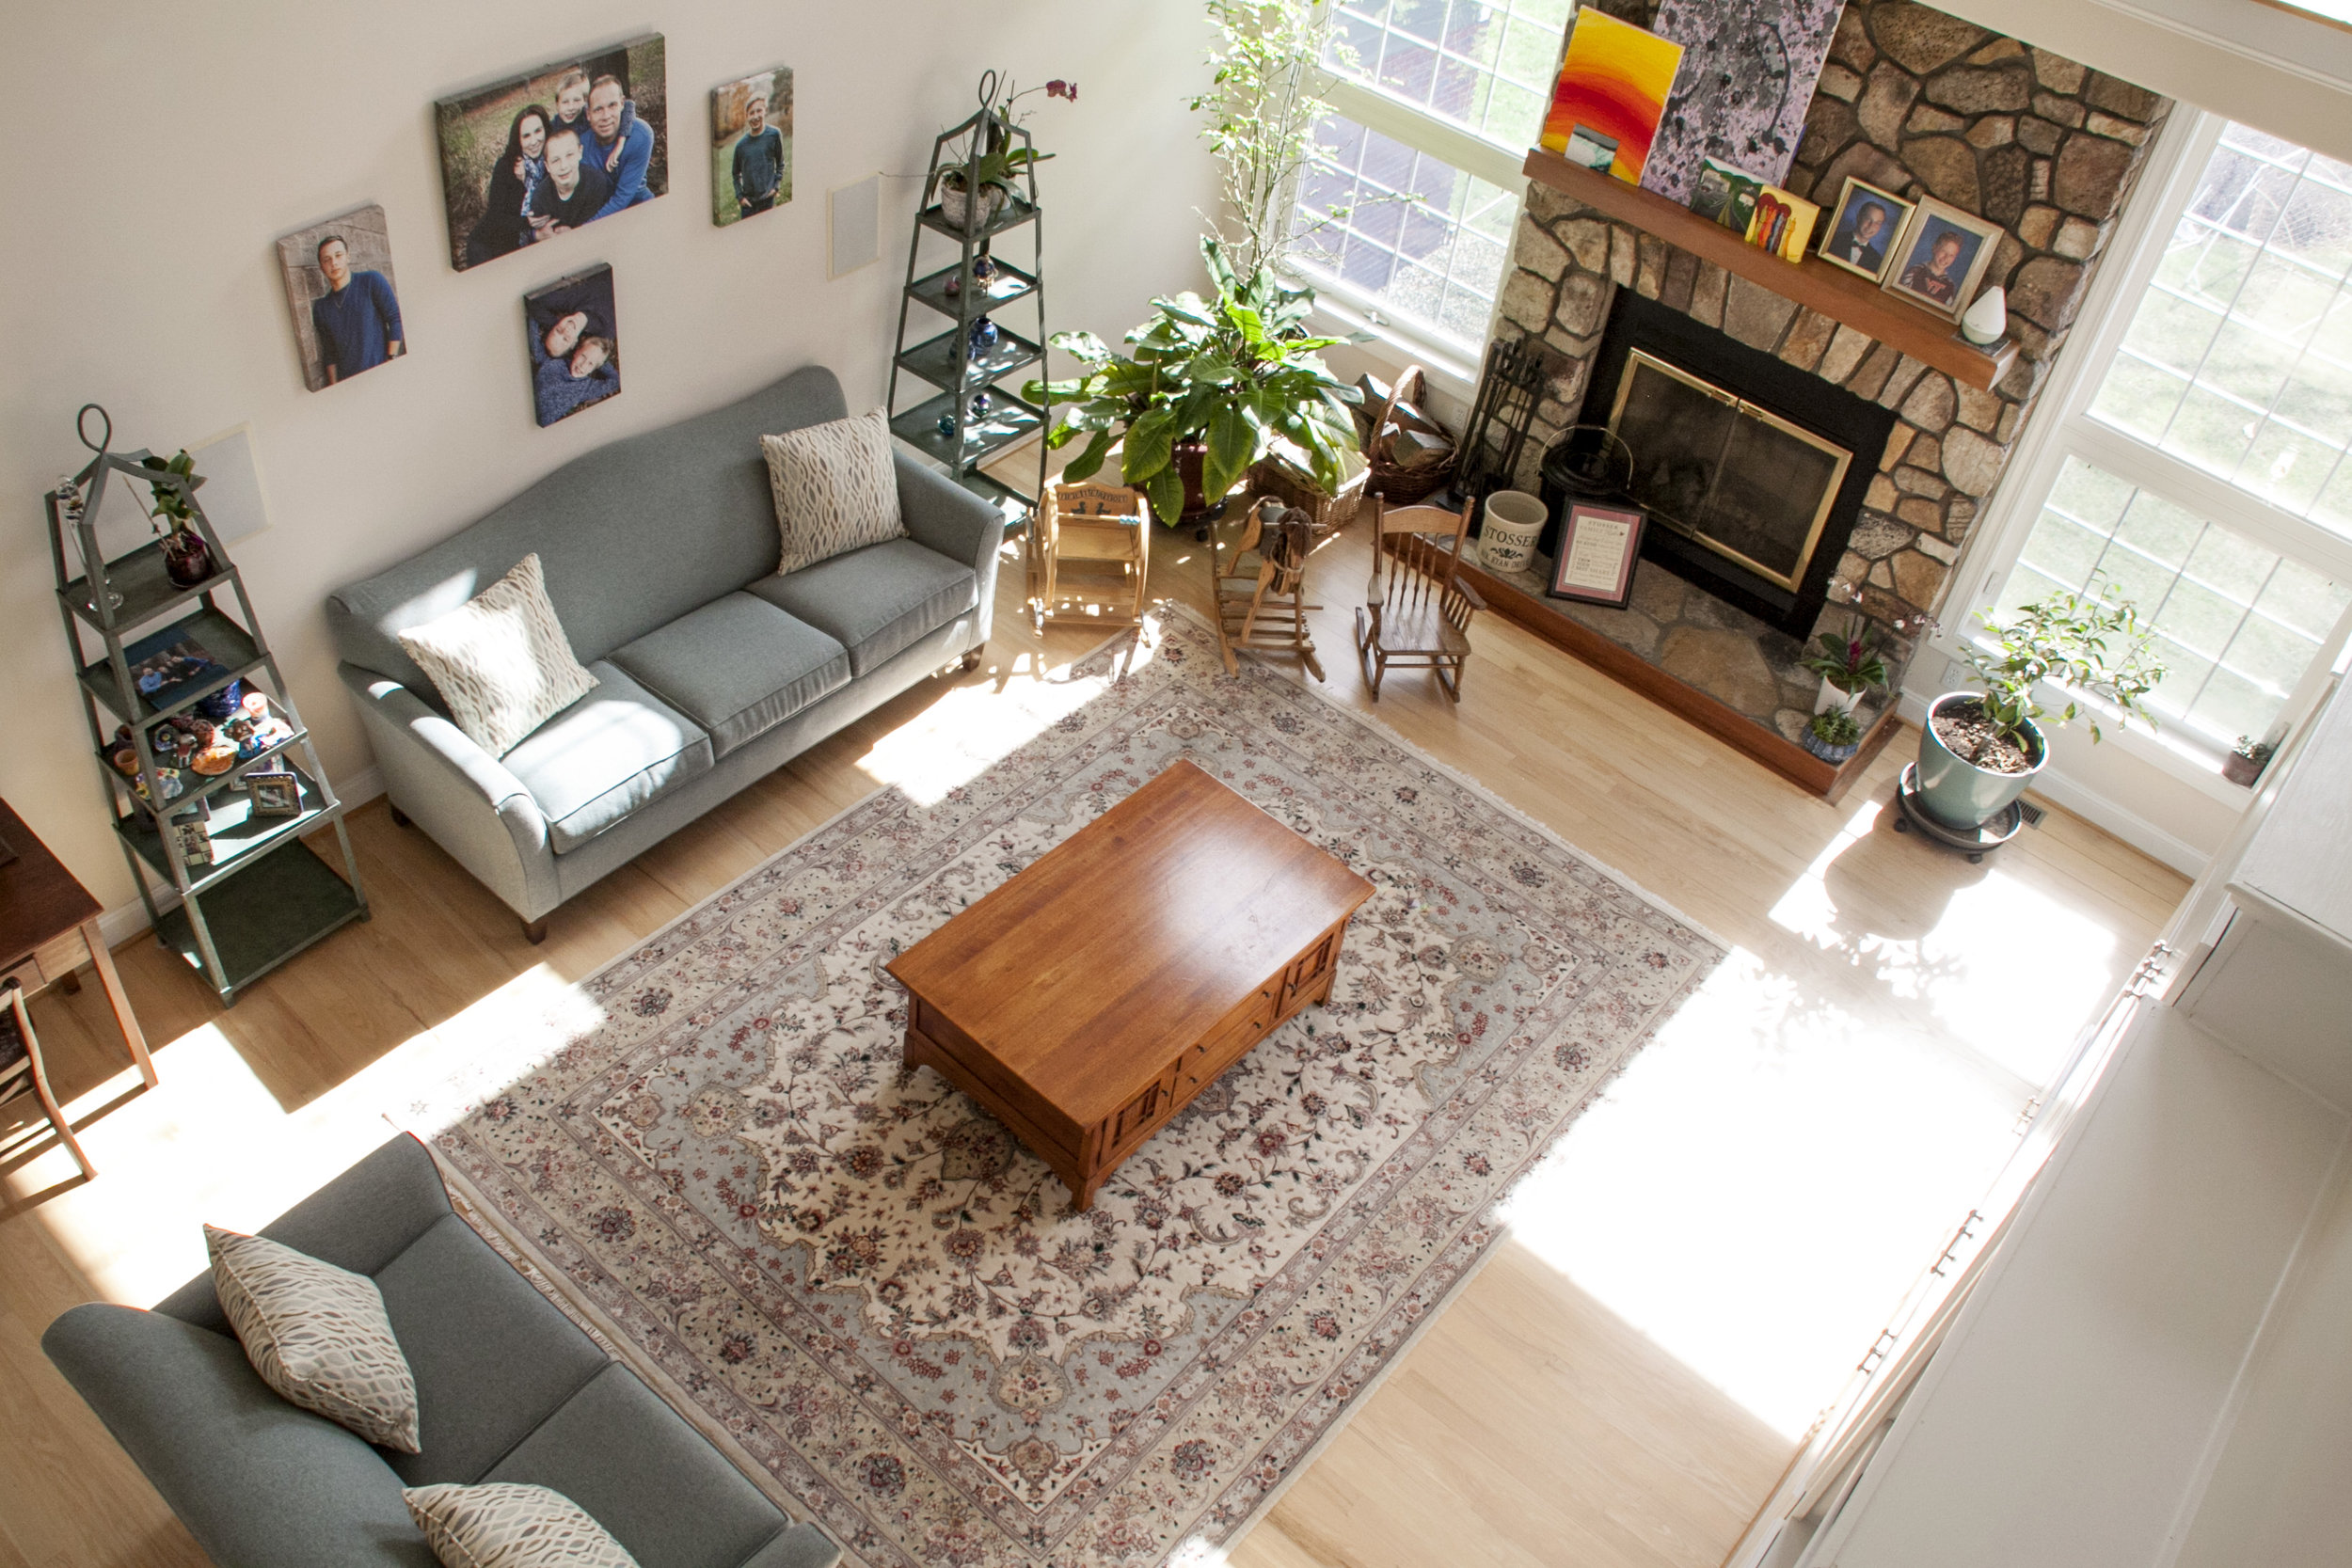 S Stosser Living Room 3.jpg